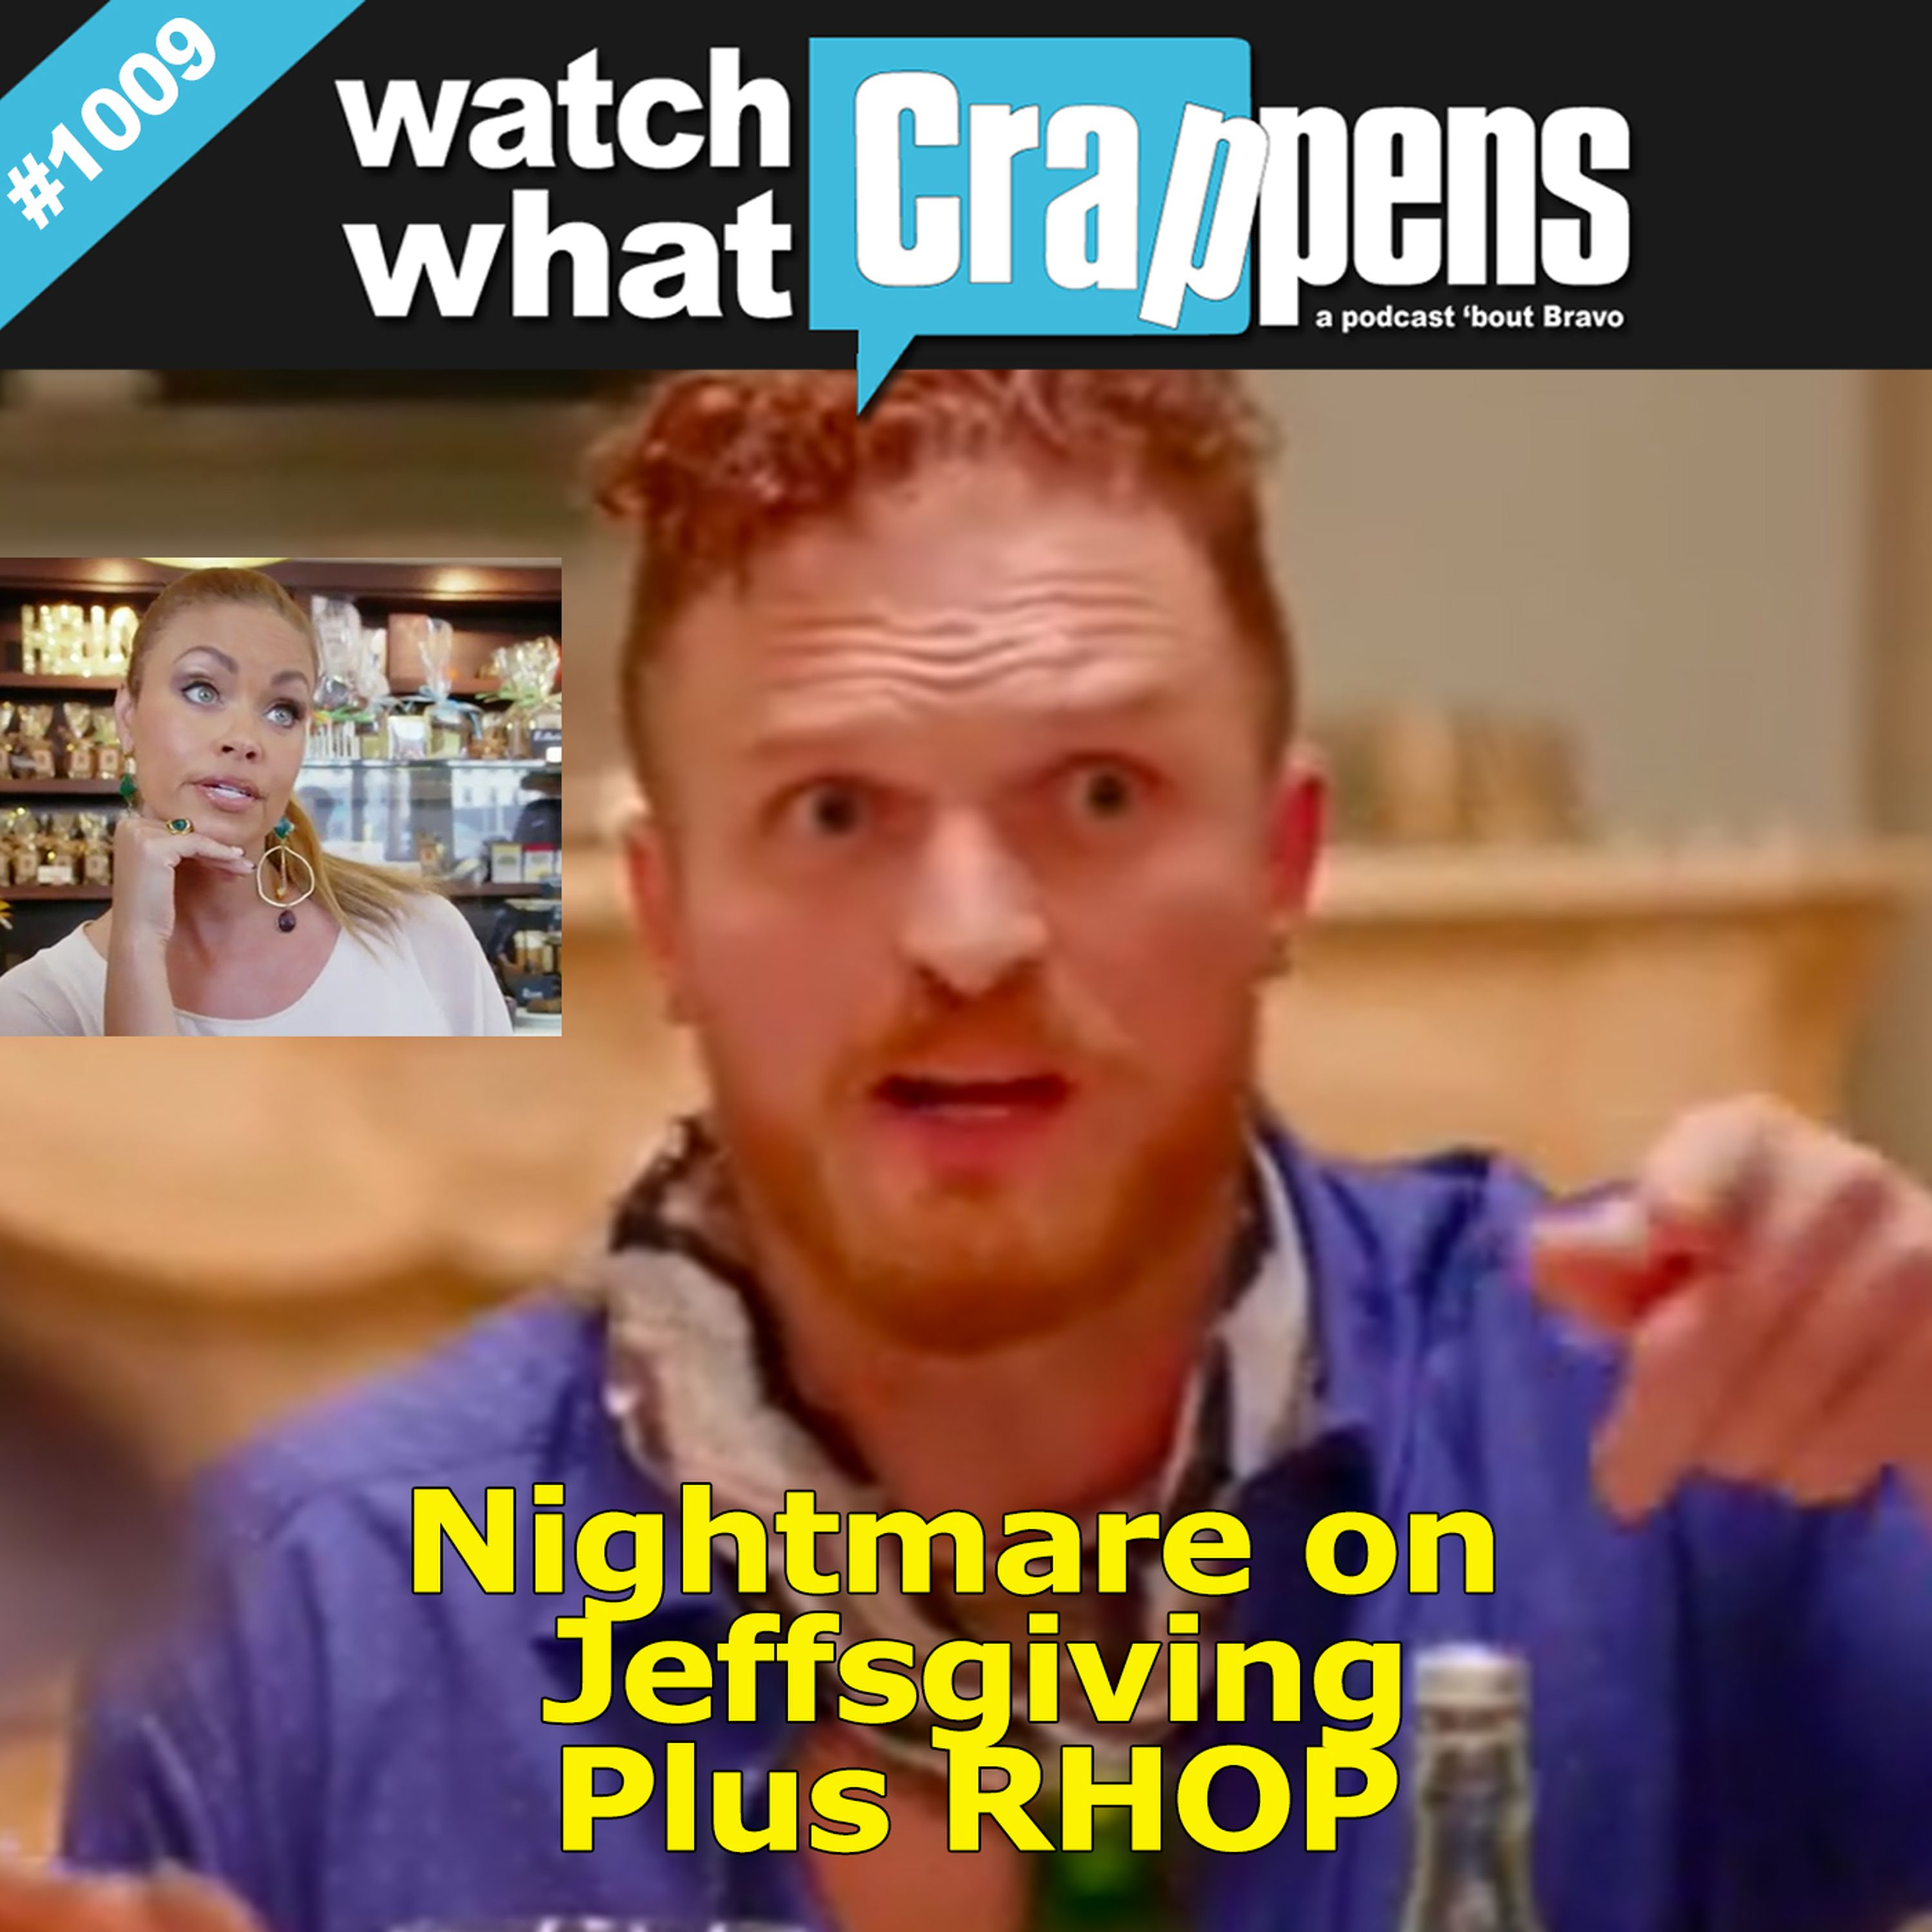 Southern Charm NOLA and RHOP: Nightmare on Jeffsgiving